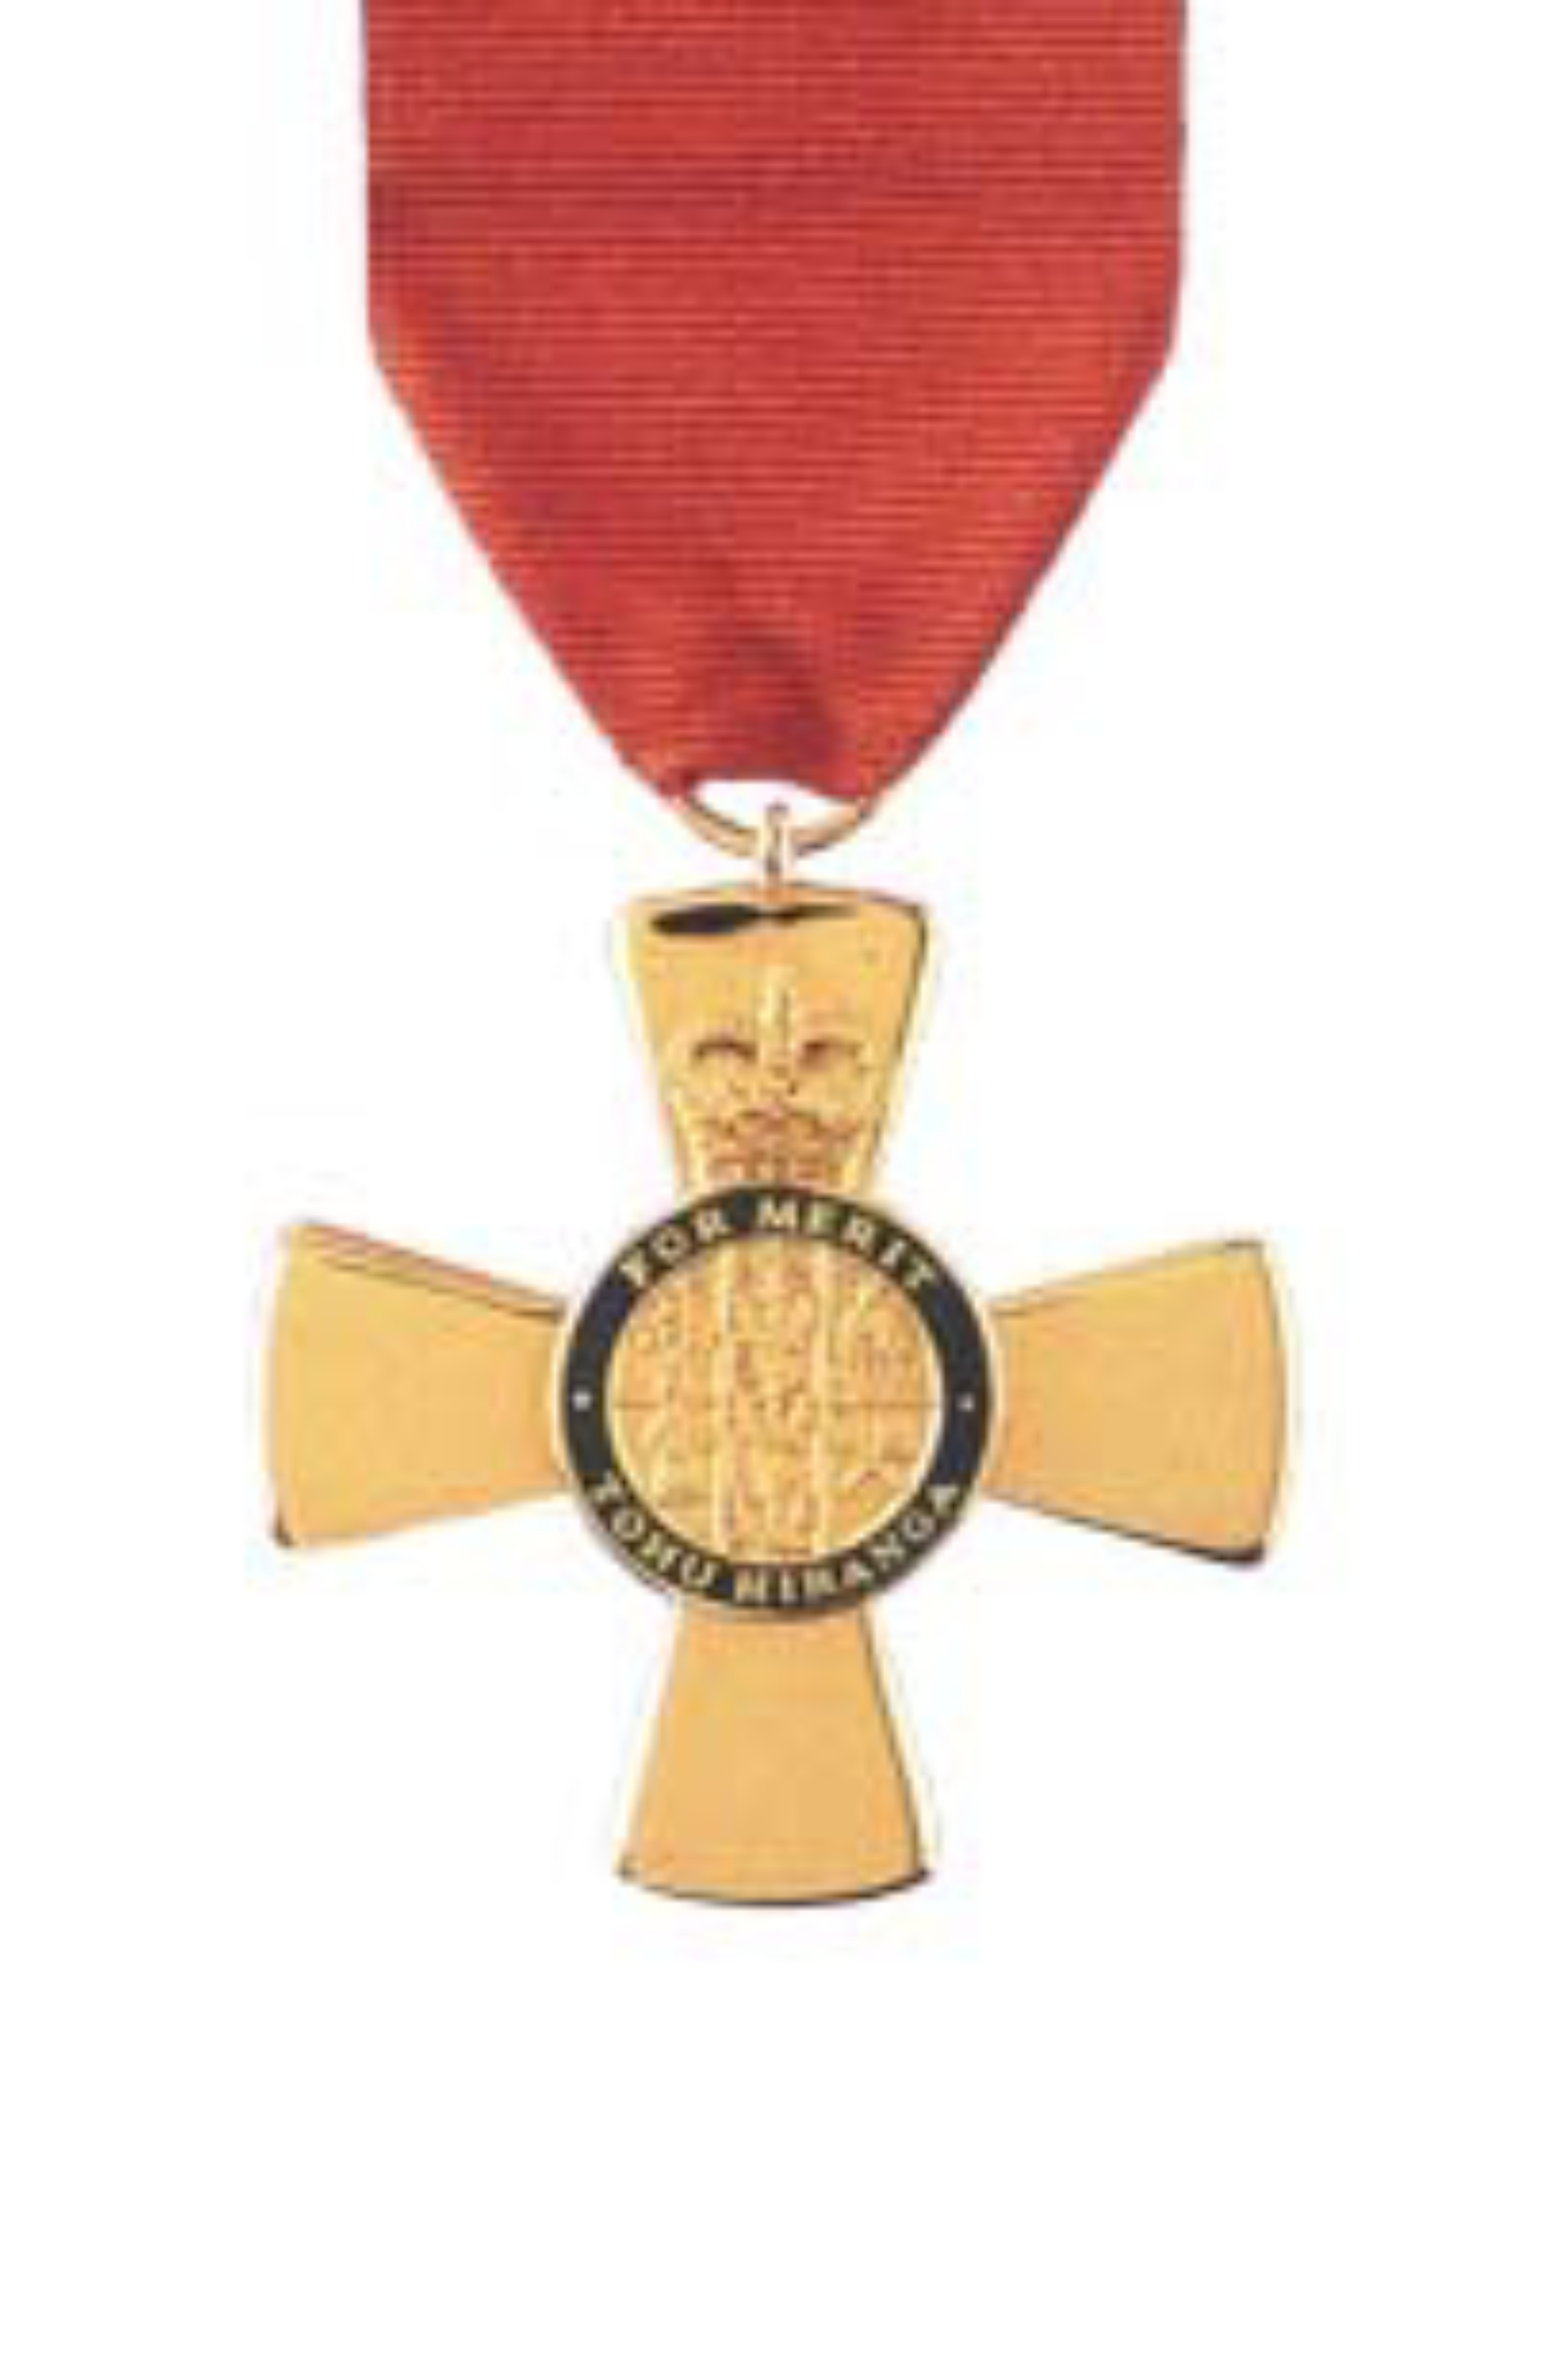 New Zealand Order of Merit for Sports